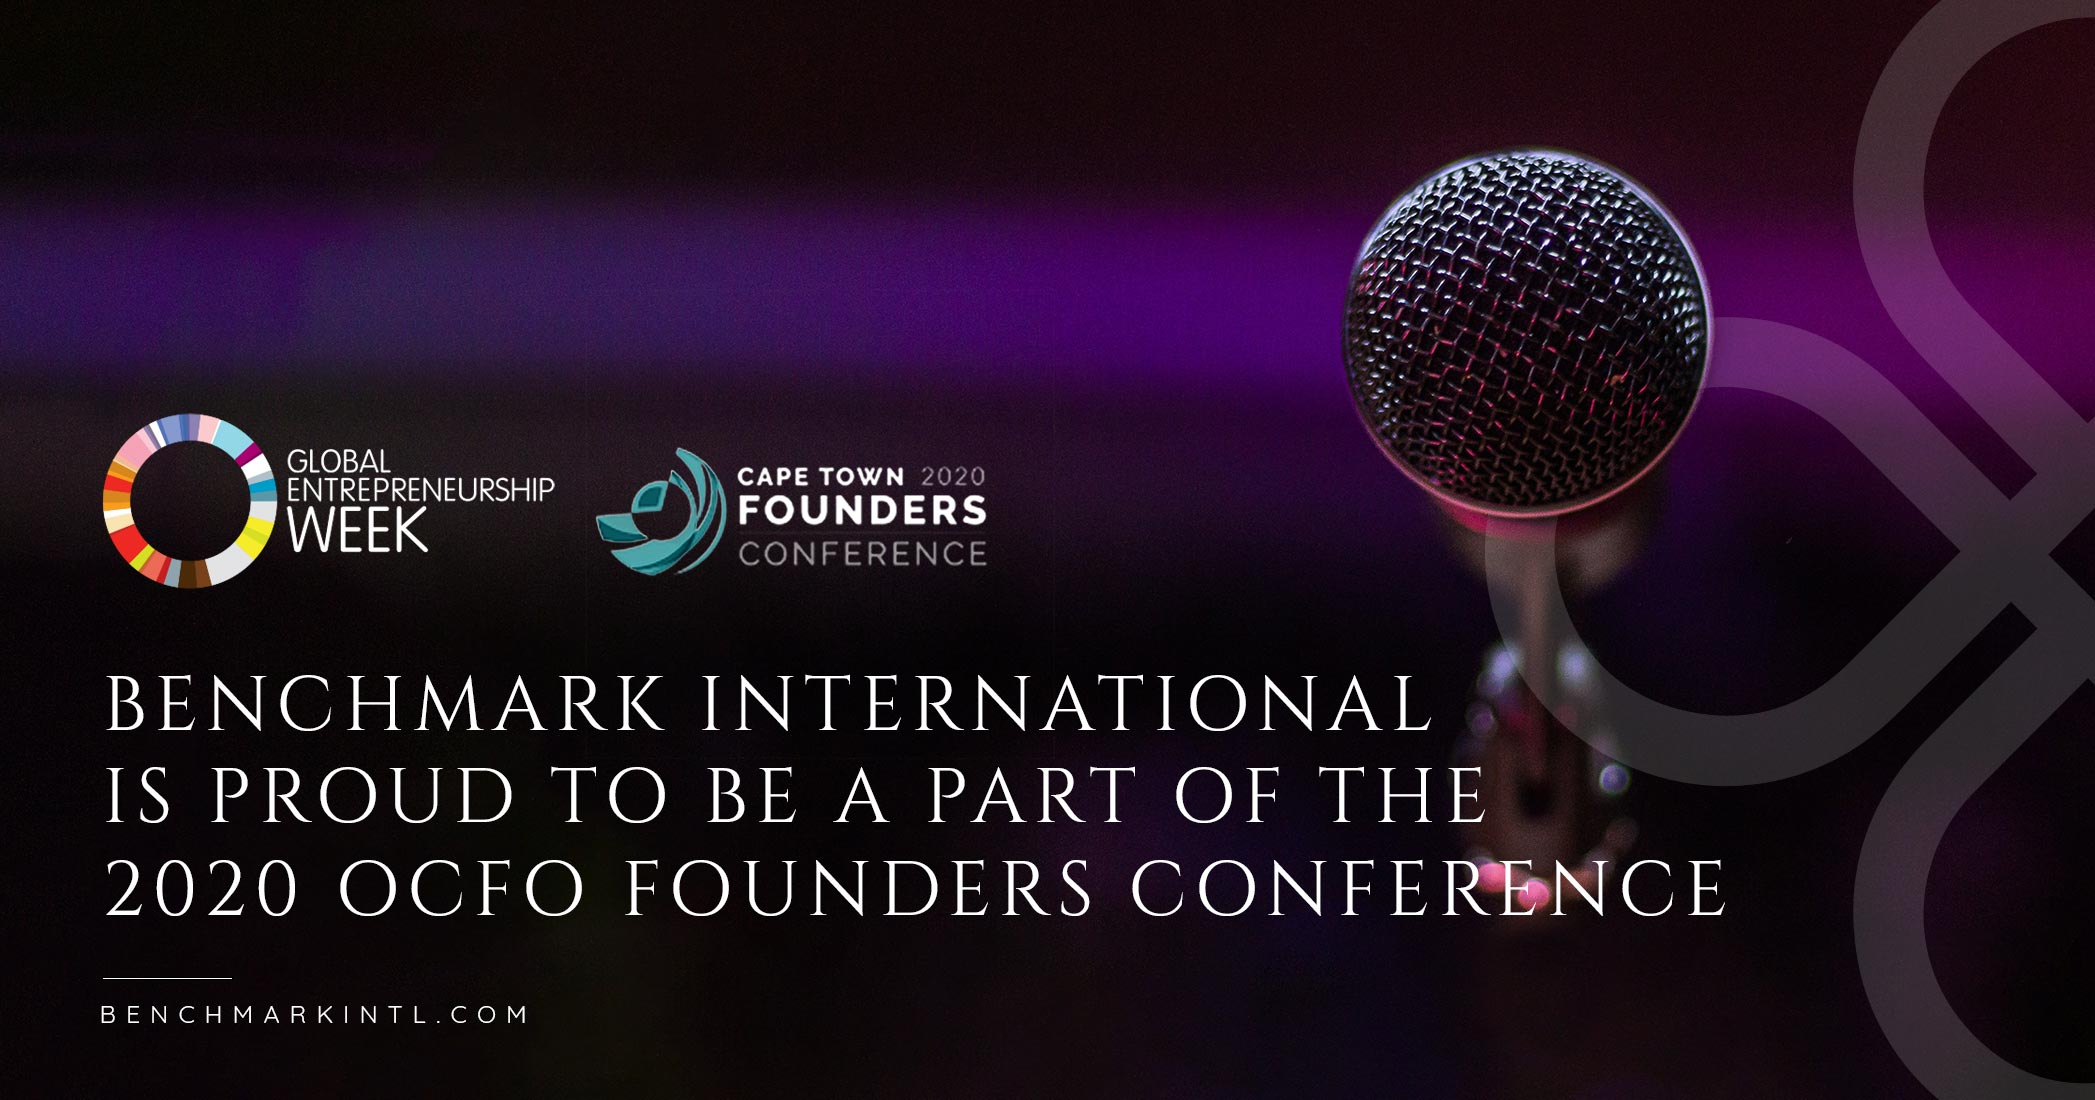 Benchmark International Is Proud To Be A Part Of The 2020 OCFO Founders Conference